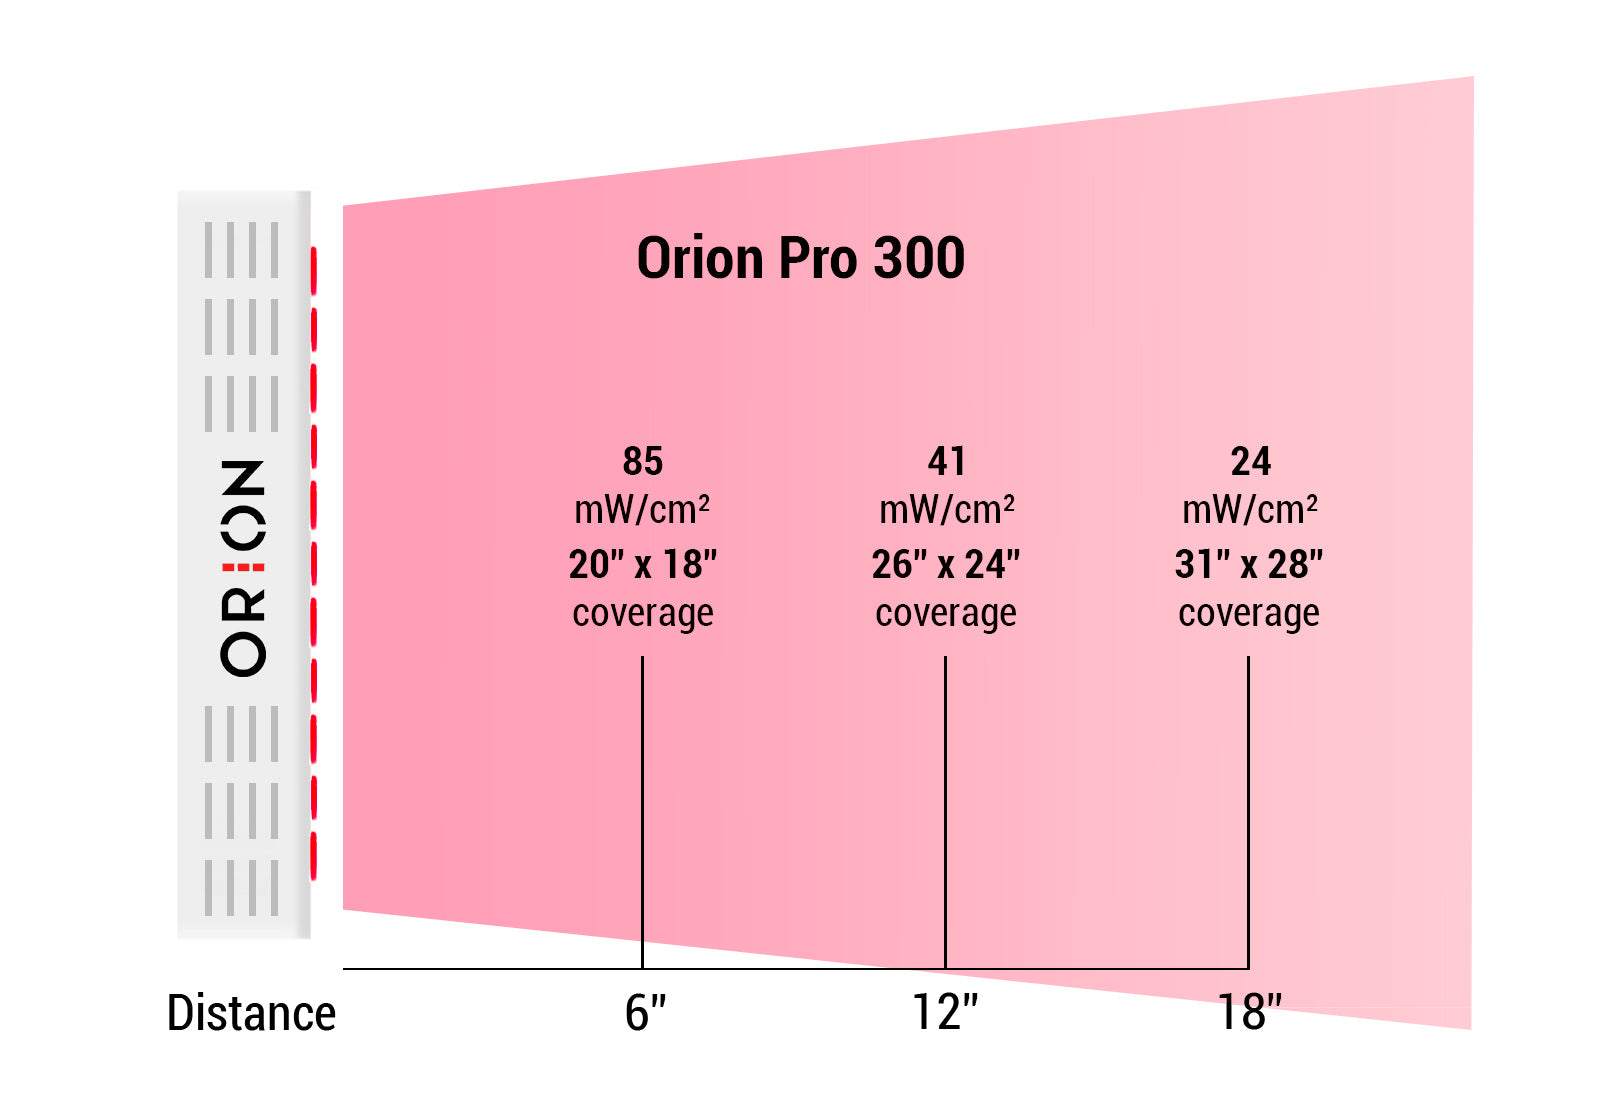 Orion Pro 300 Irradiance Levels | Orion Red Light Therapy